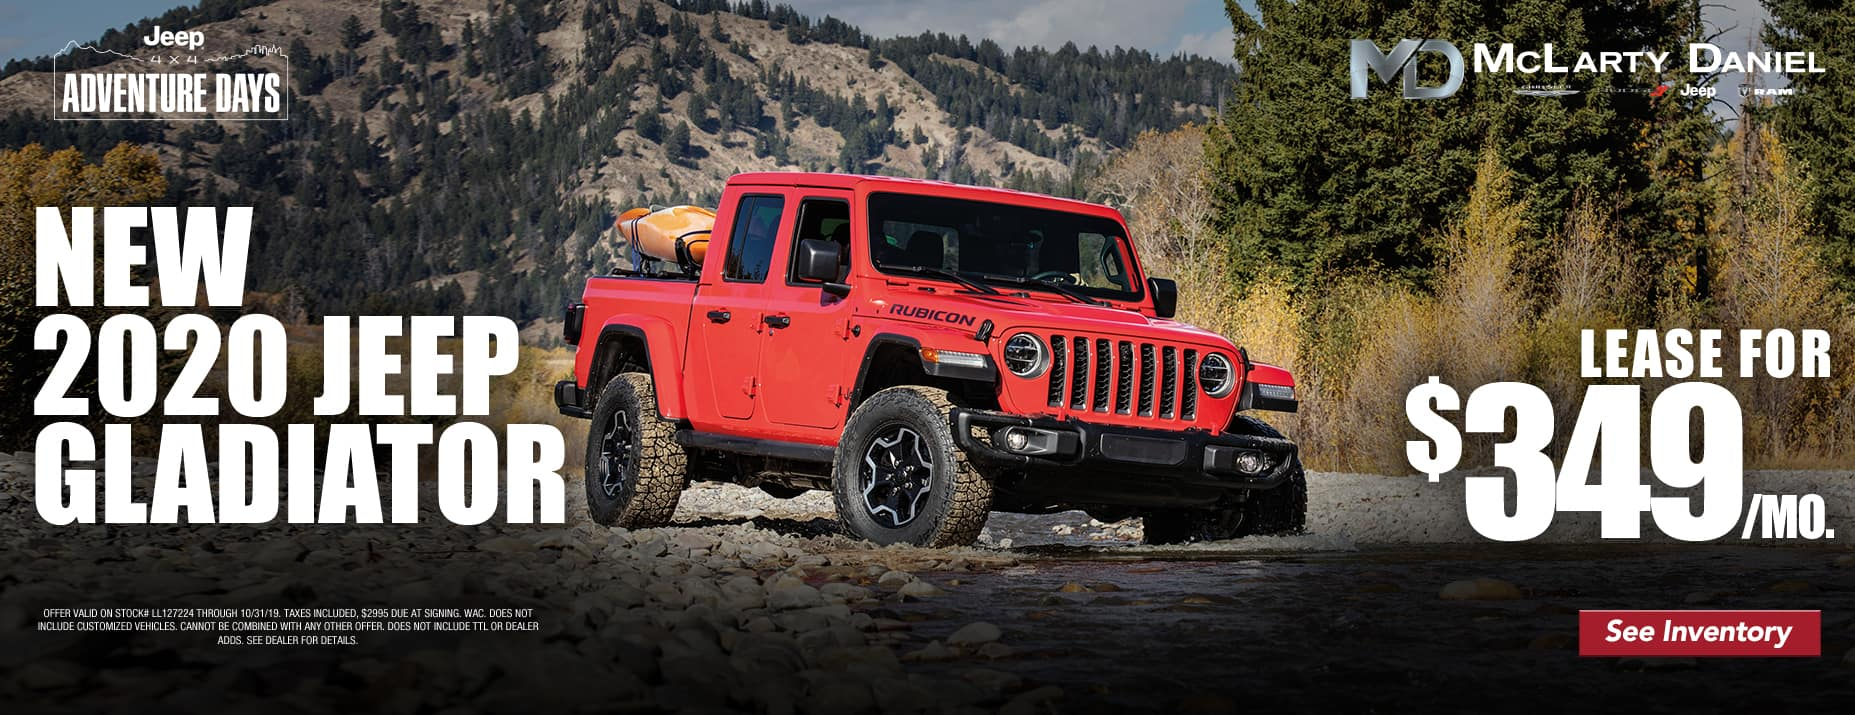 Jeep Gladiator lease for only $349/mo!